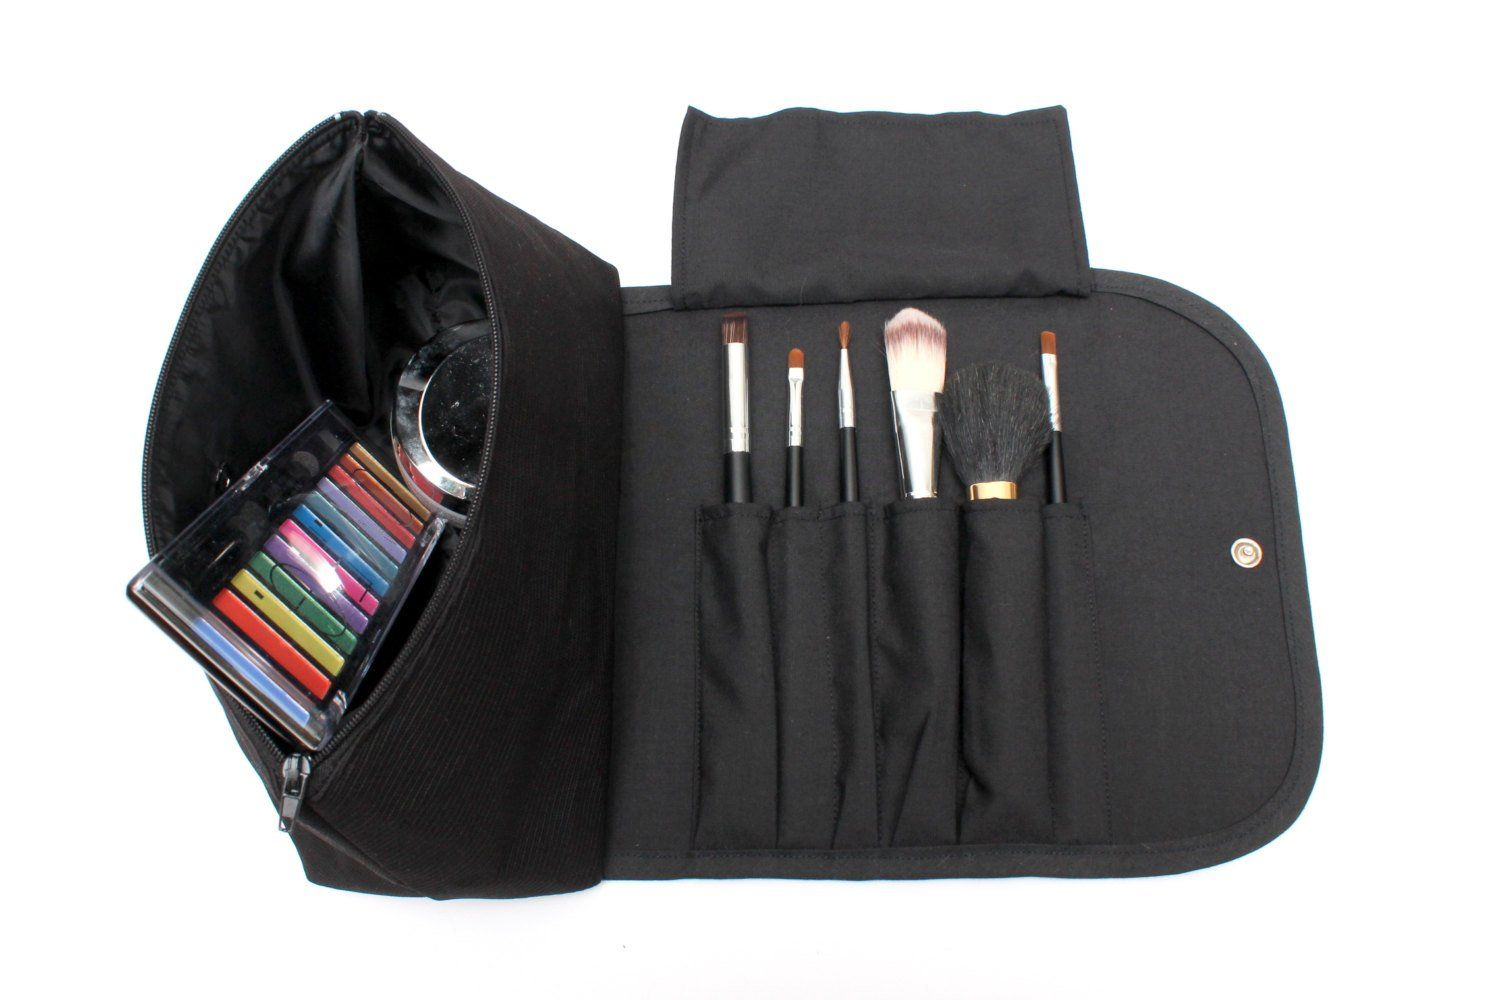 Black Obessed Large Makeup Bag with a Brush Holder Roll